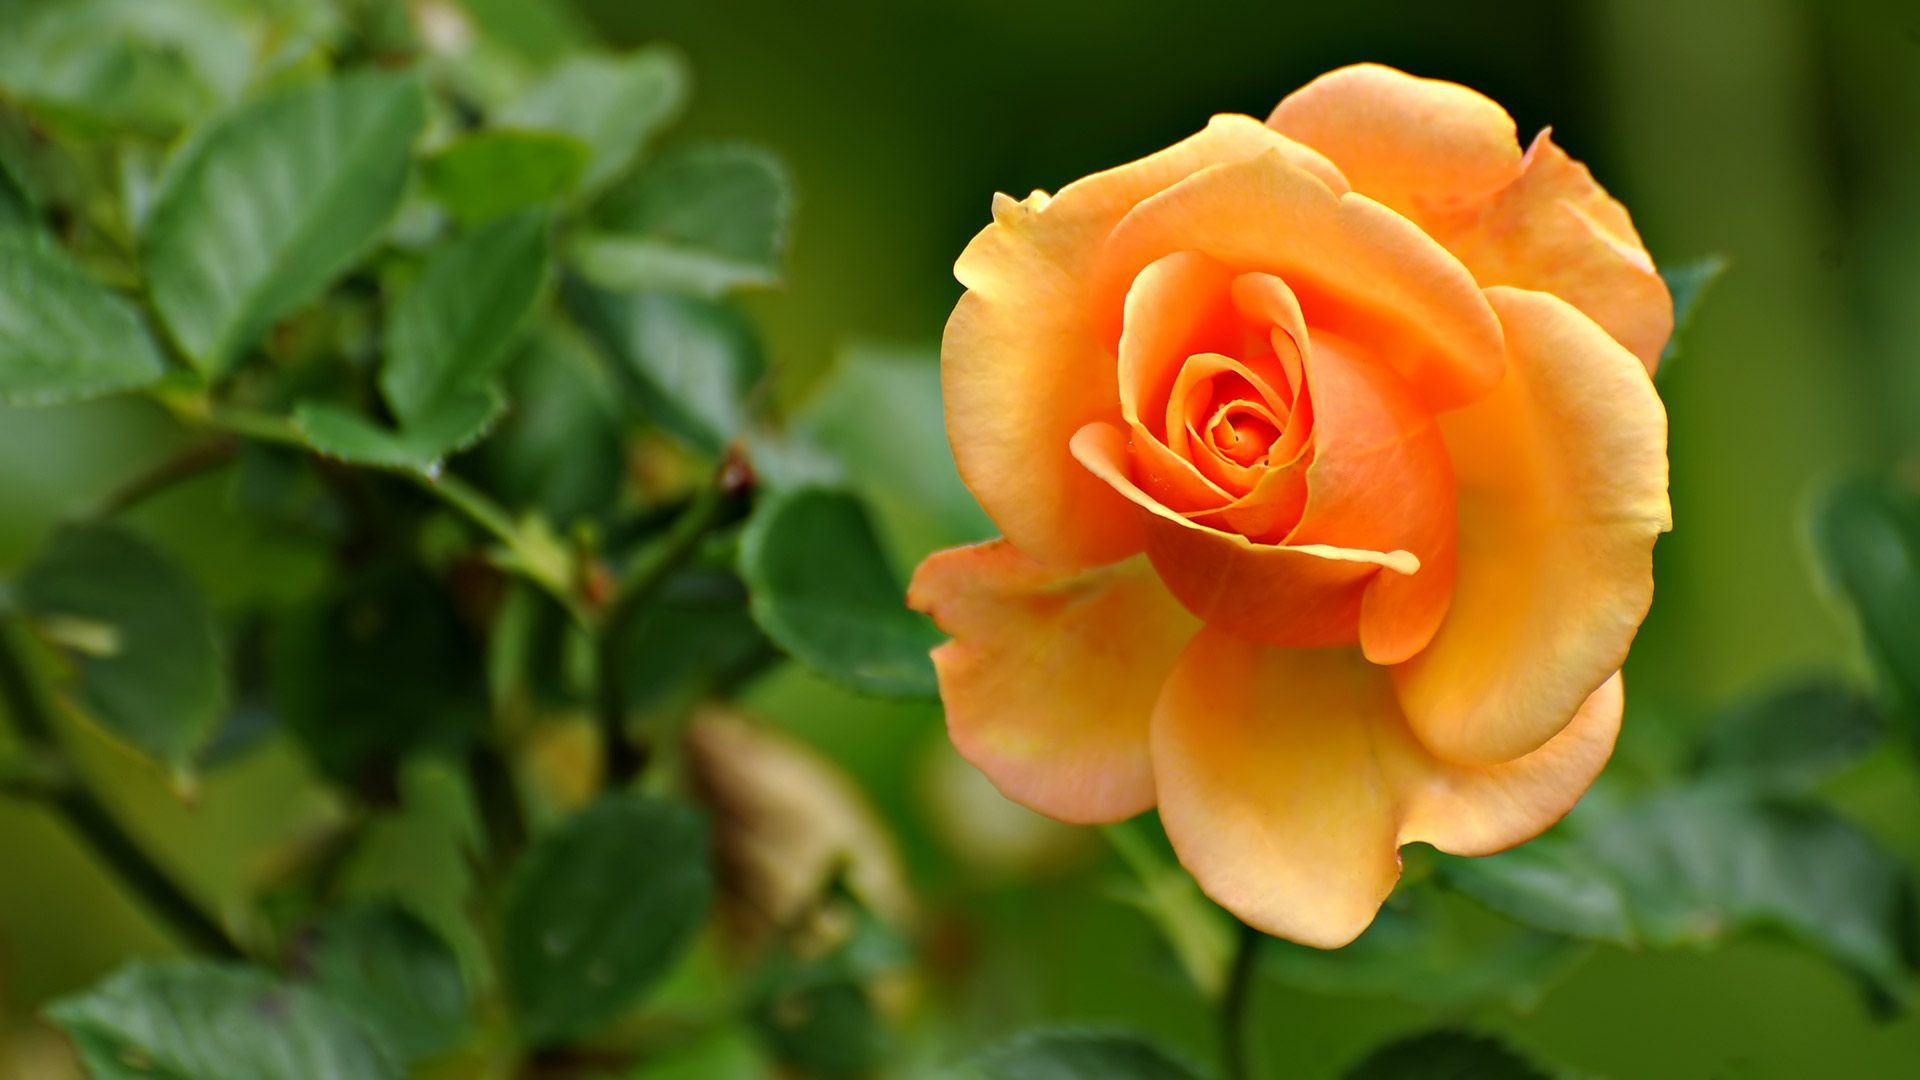 Beautiful Orange Rose Desktop Wallpaper – HD Wallpapers Images ...